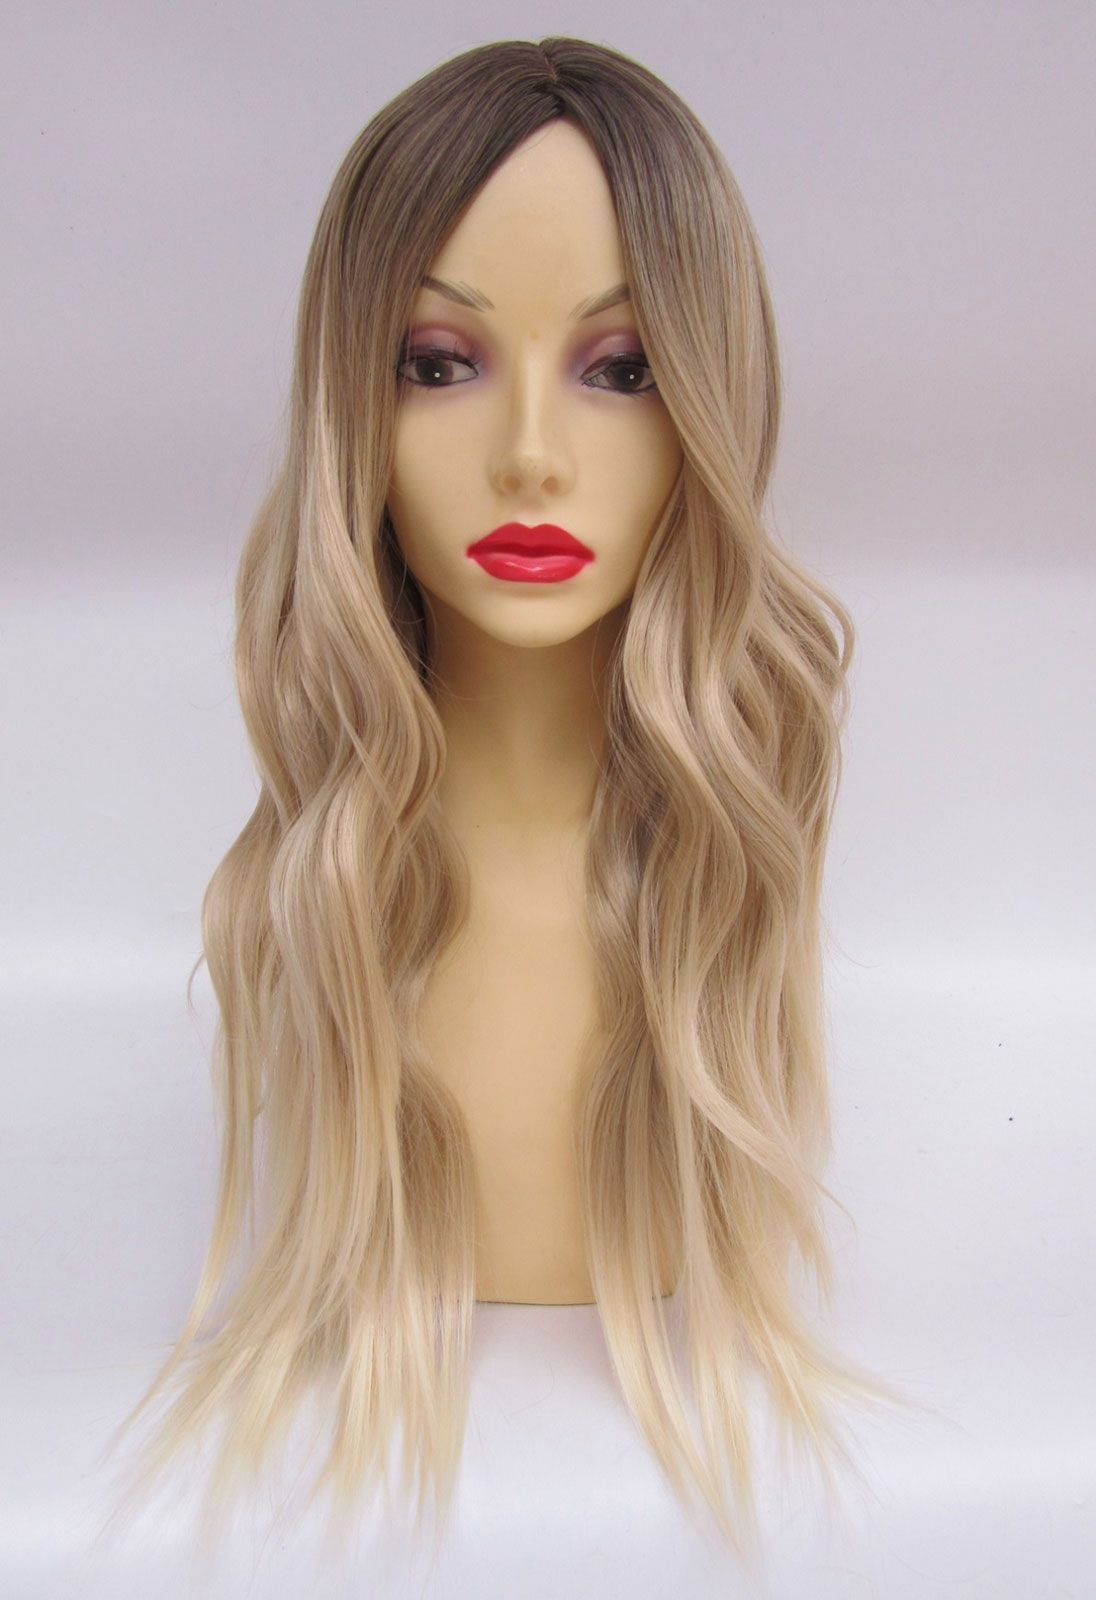 Long Blonde Wavy Fashion Wig  KhloeKardashian  Celebrity  Roots  Regrowth   Hairstyle  Hair 5a7d8e846